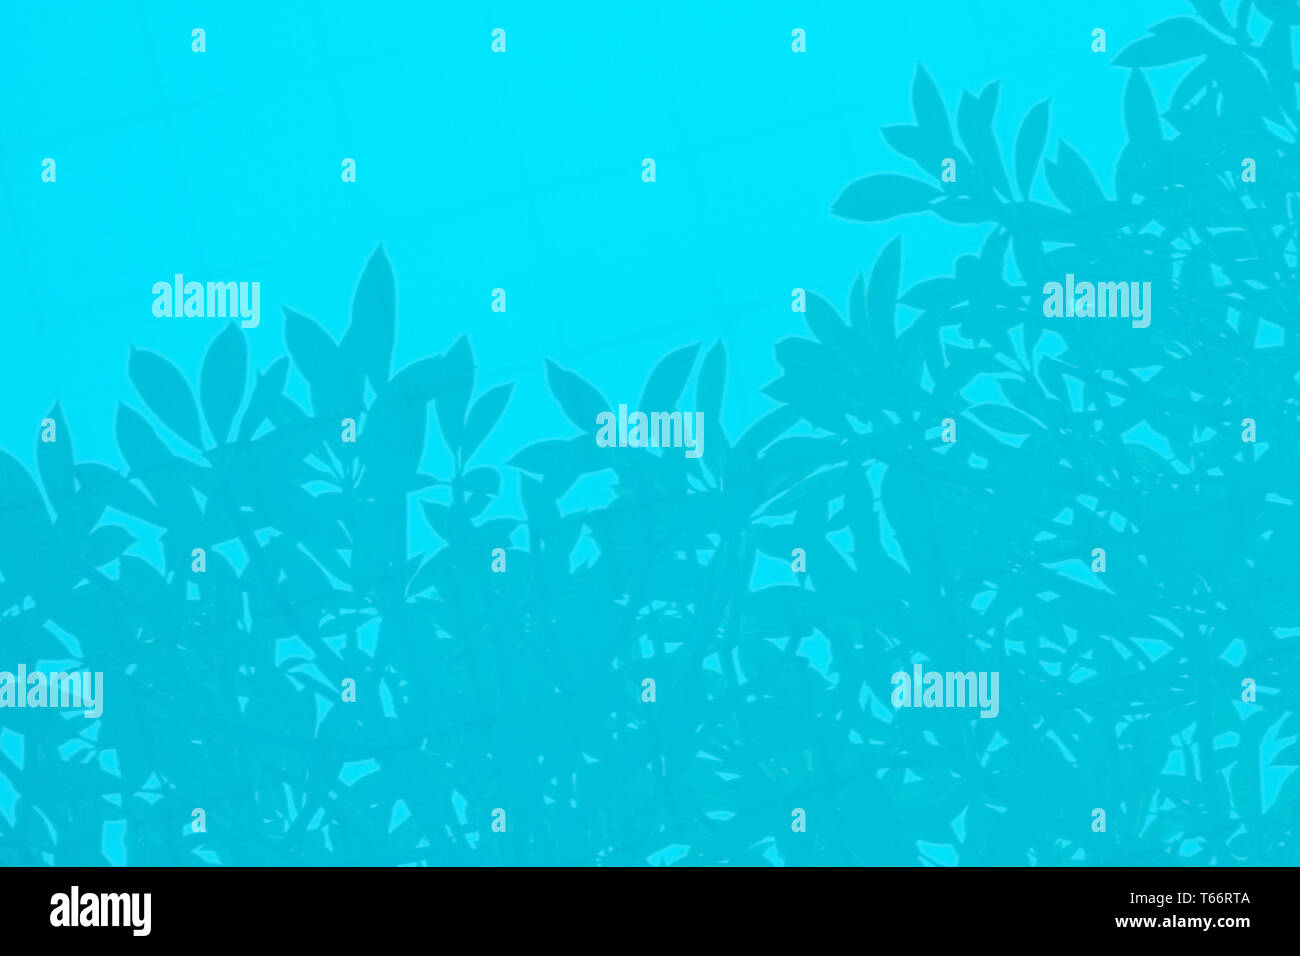 Shadow of leaves and branches is reflected in water pool. Reflection of a tree silhouette. Abstract background of blue color, soft focus.  Copy space. - Stock Image